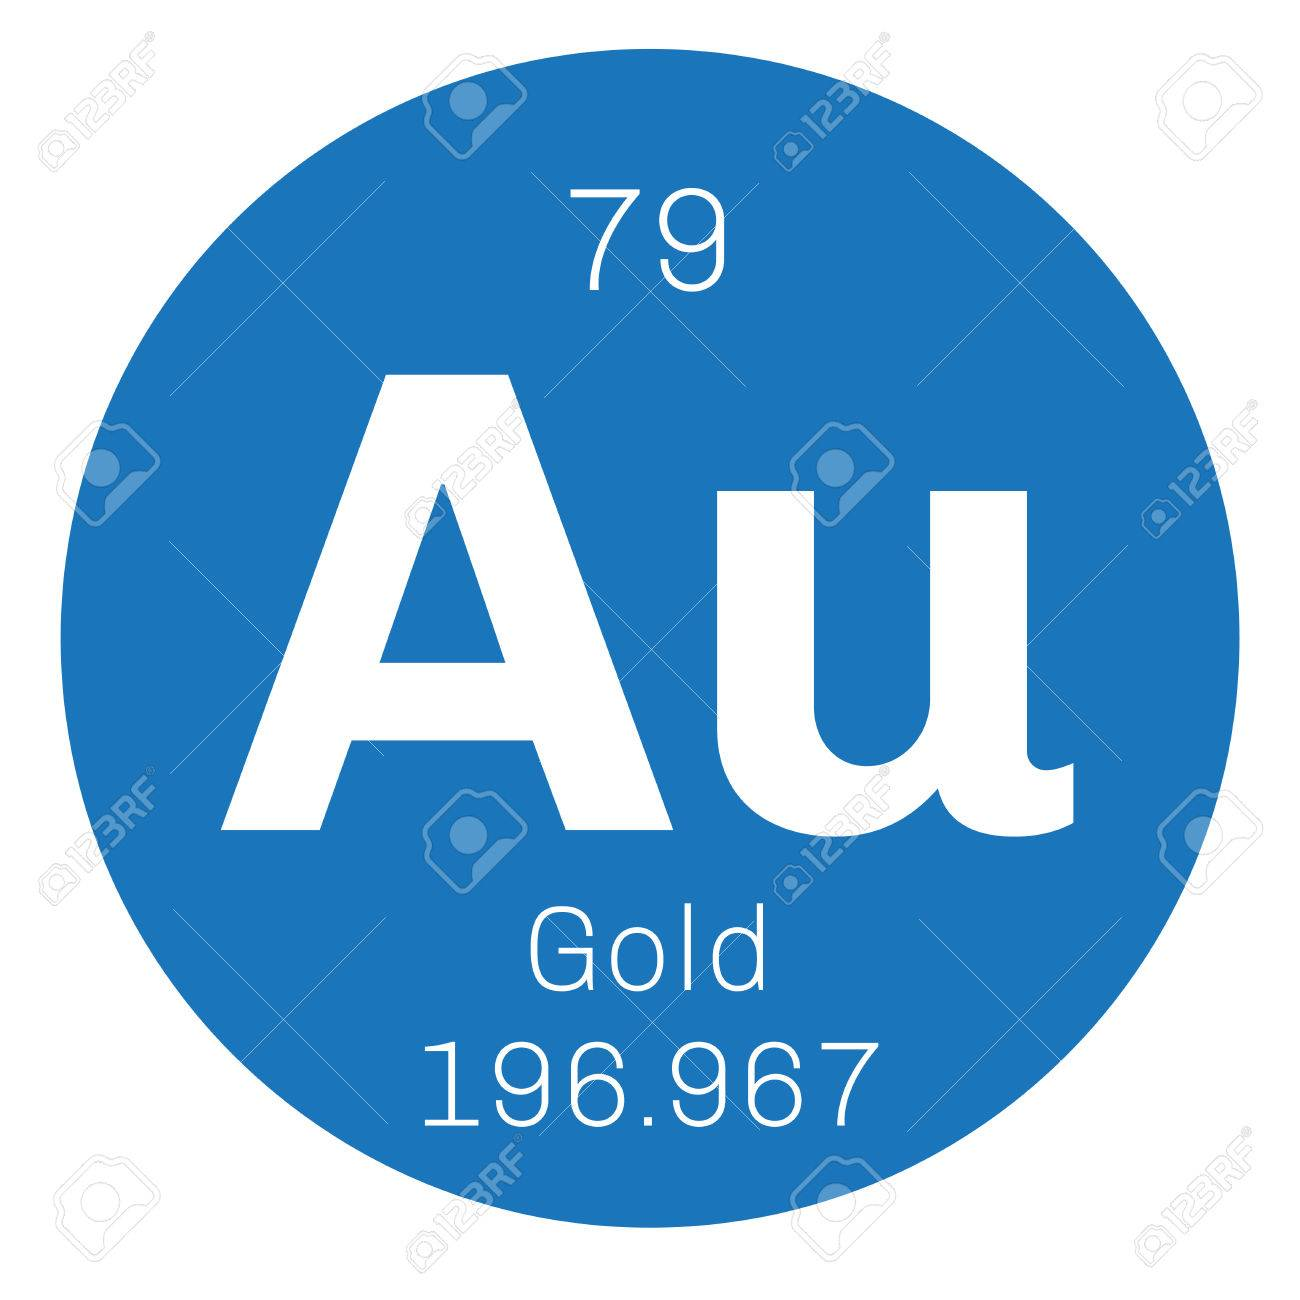 Gold chemical element one of the least reactive chemical elements gold chemical element one of the least reactive chemical elements colored icon with atomic biocorpaavc